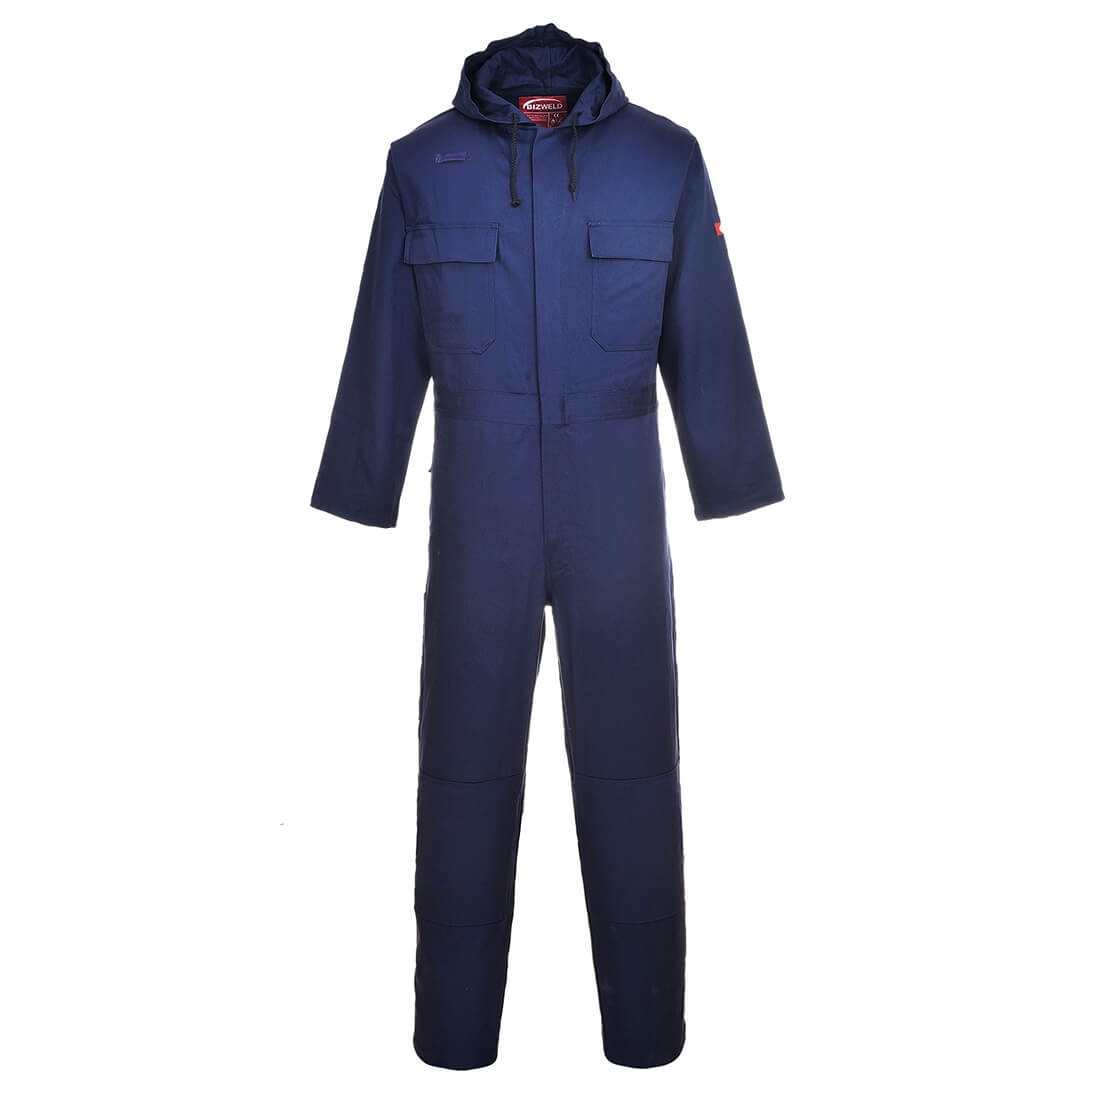 Image of Biz Weld Flame Resistant Hooded Coverall Navy 2XL